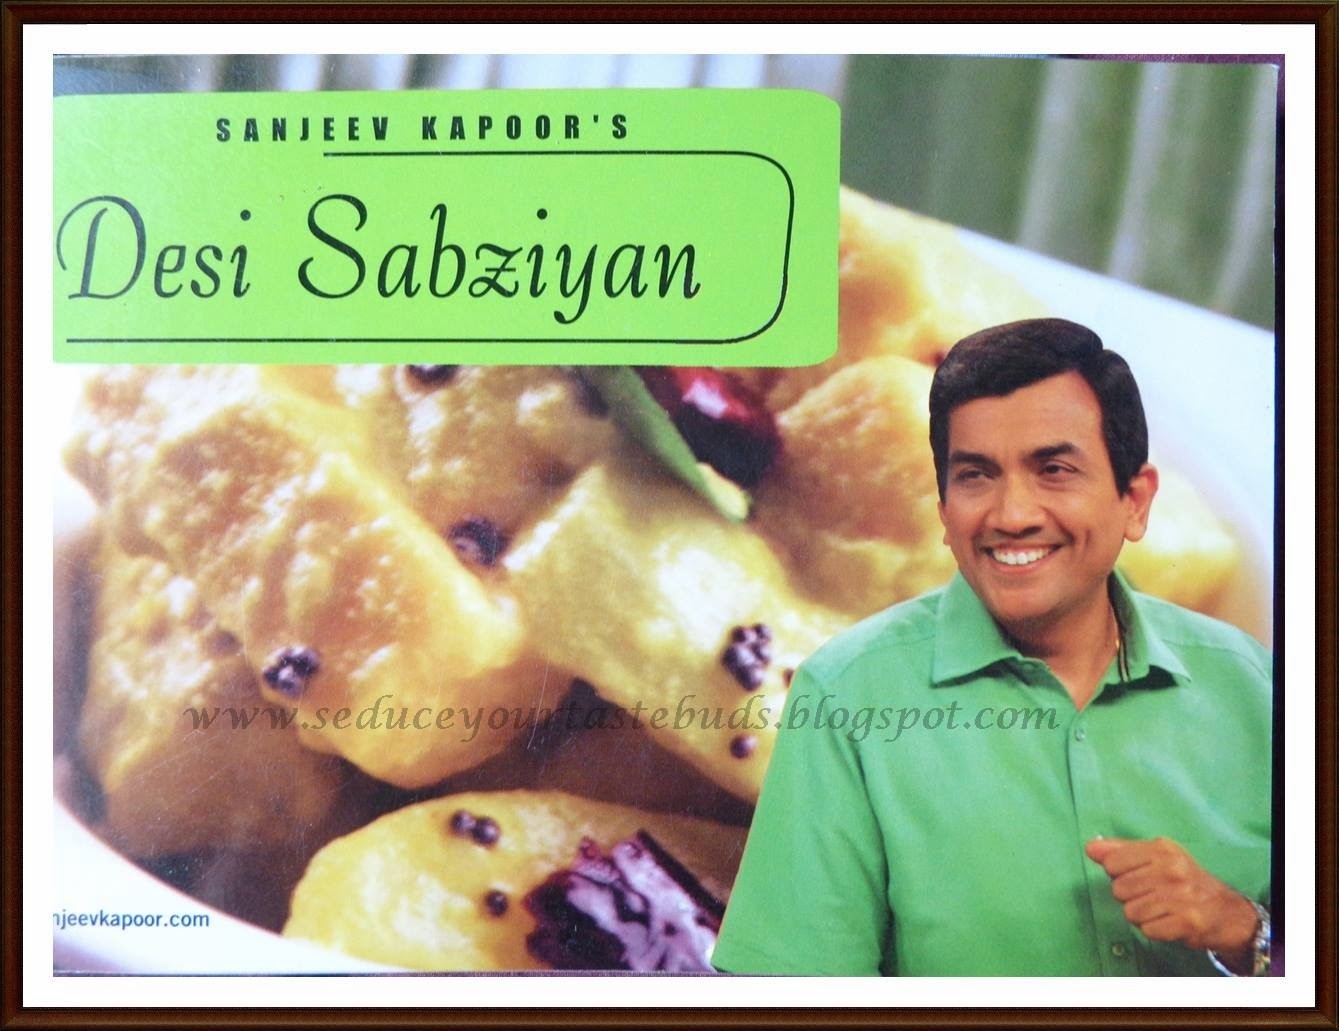 FR2 : Desi Sabziyan - Cookbook Review